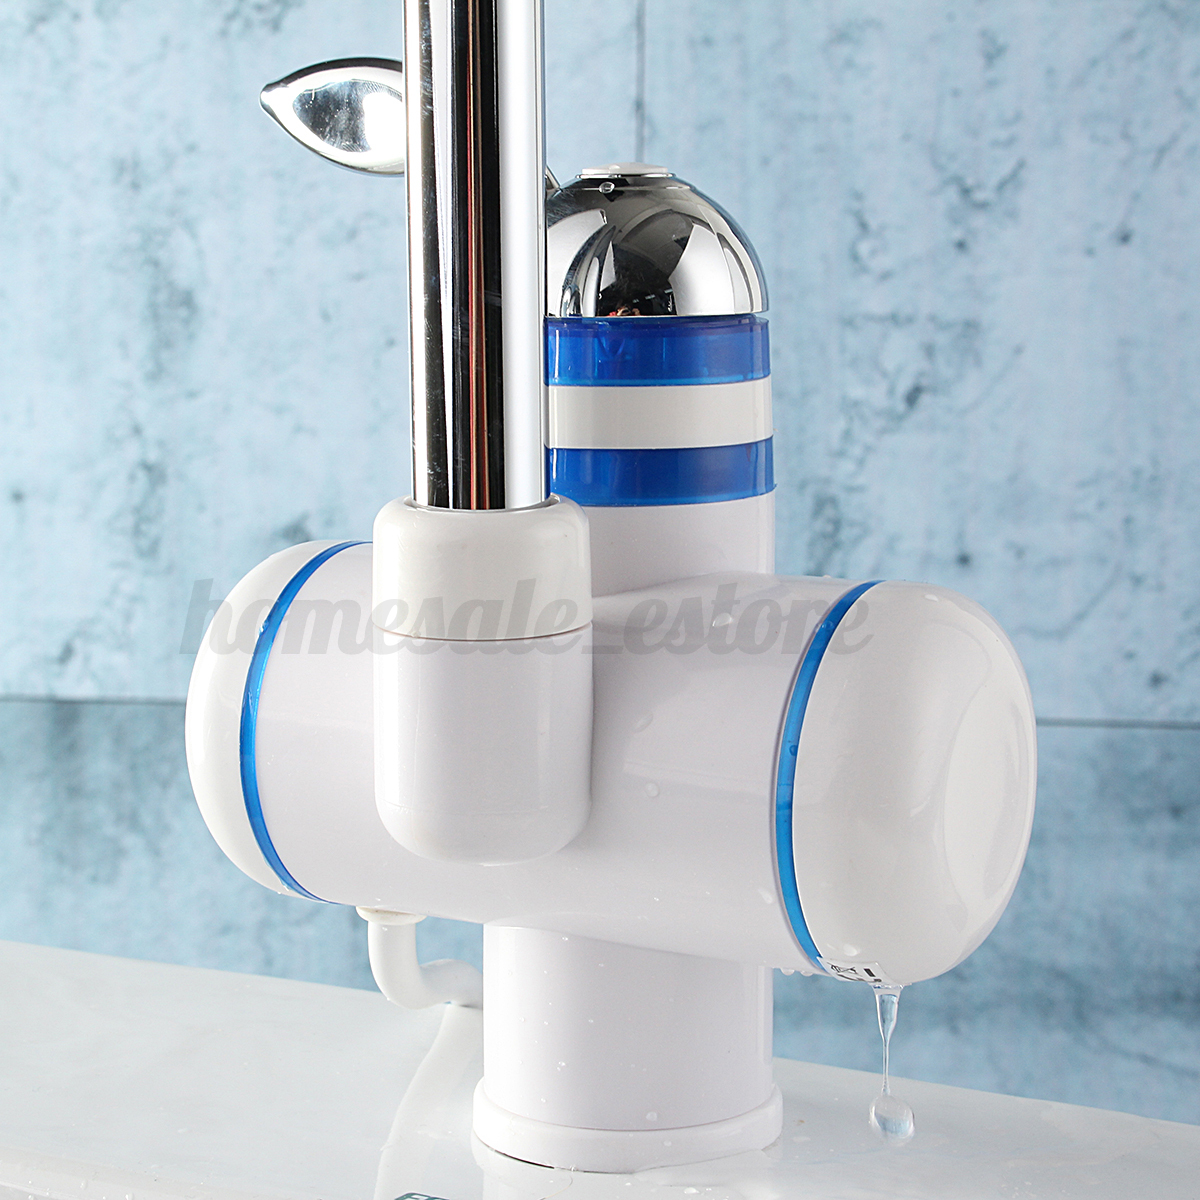 Tankless instant electric hot water heater faucet bathroom kitchen heating tap ebay for Tankless water heater for bathroom